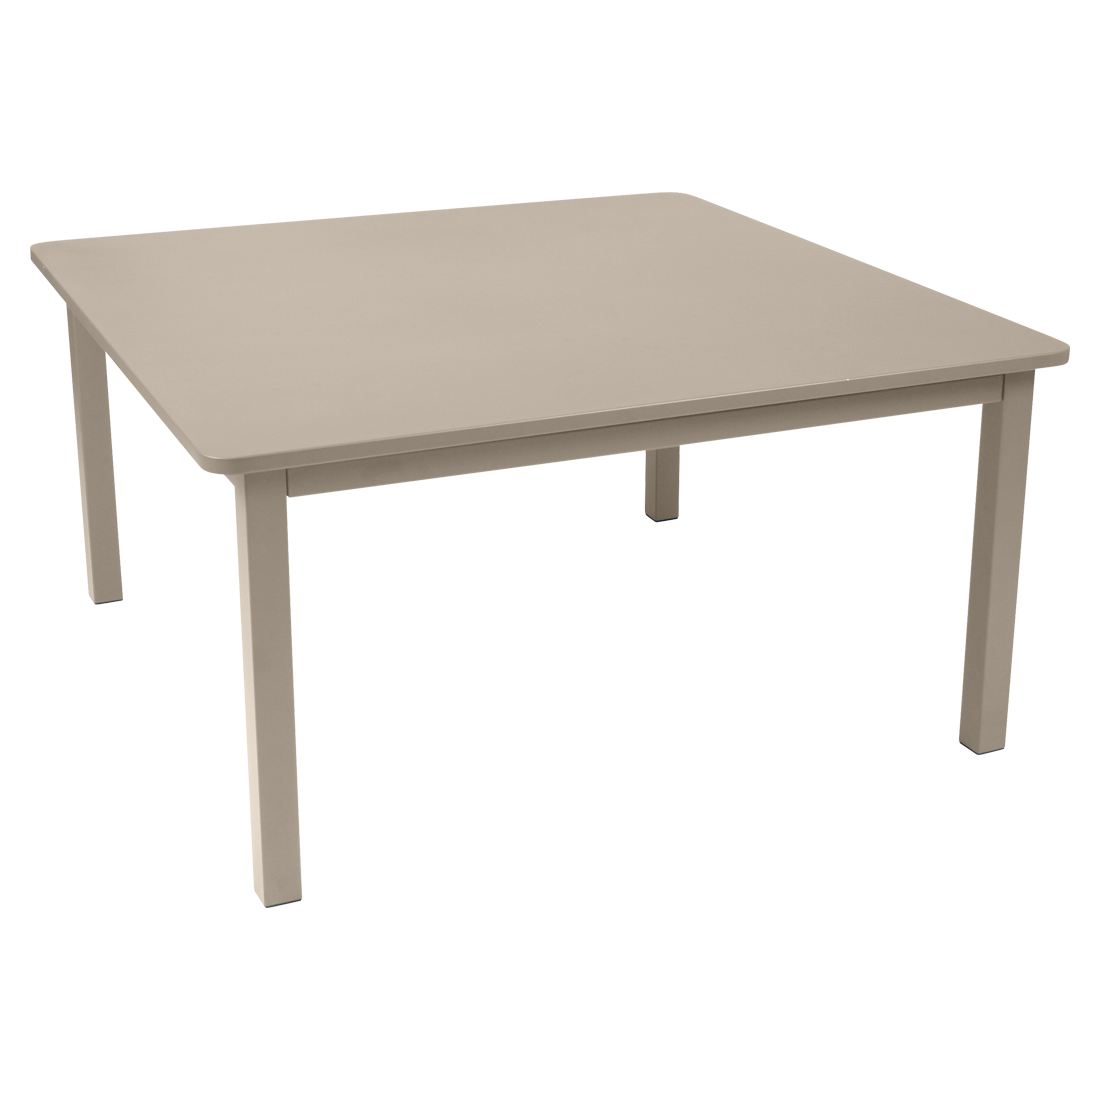 table metal, table de jardin, table carree, table beige, table 8 personnes